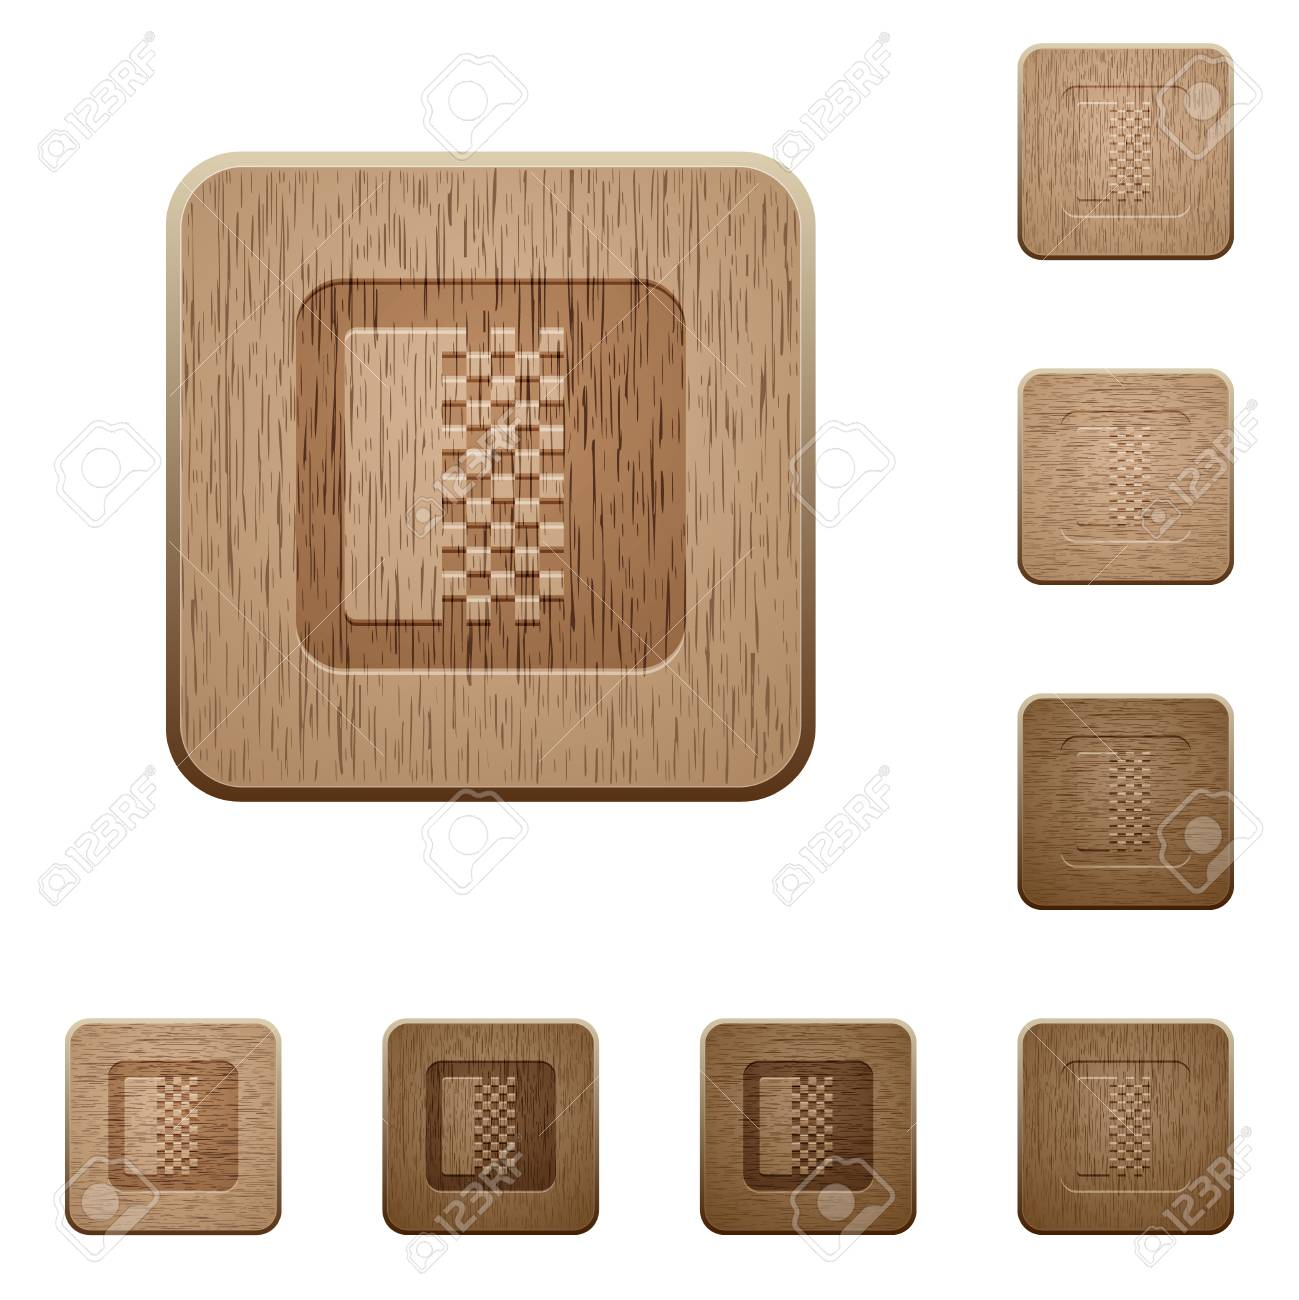 Color gradient on rounded square carved wooden button styles - 127119919